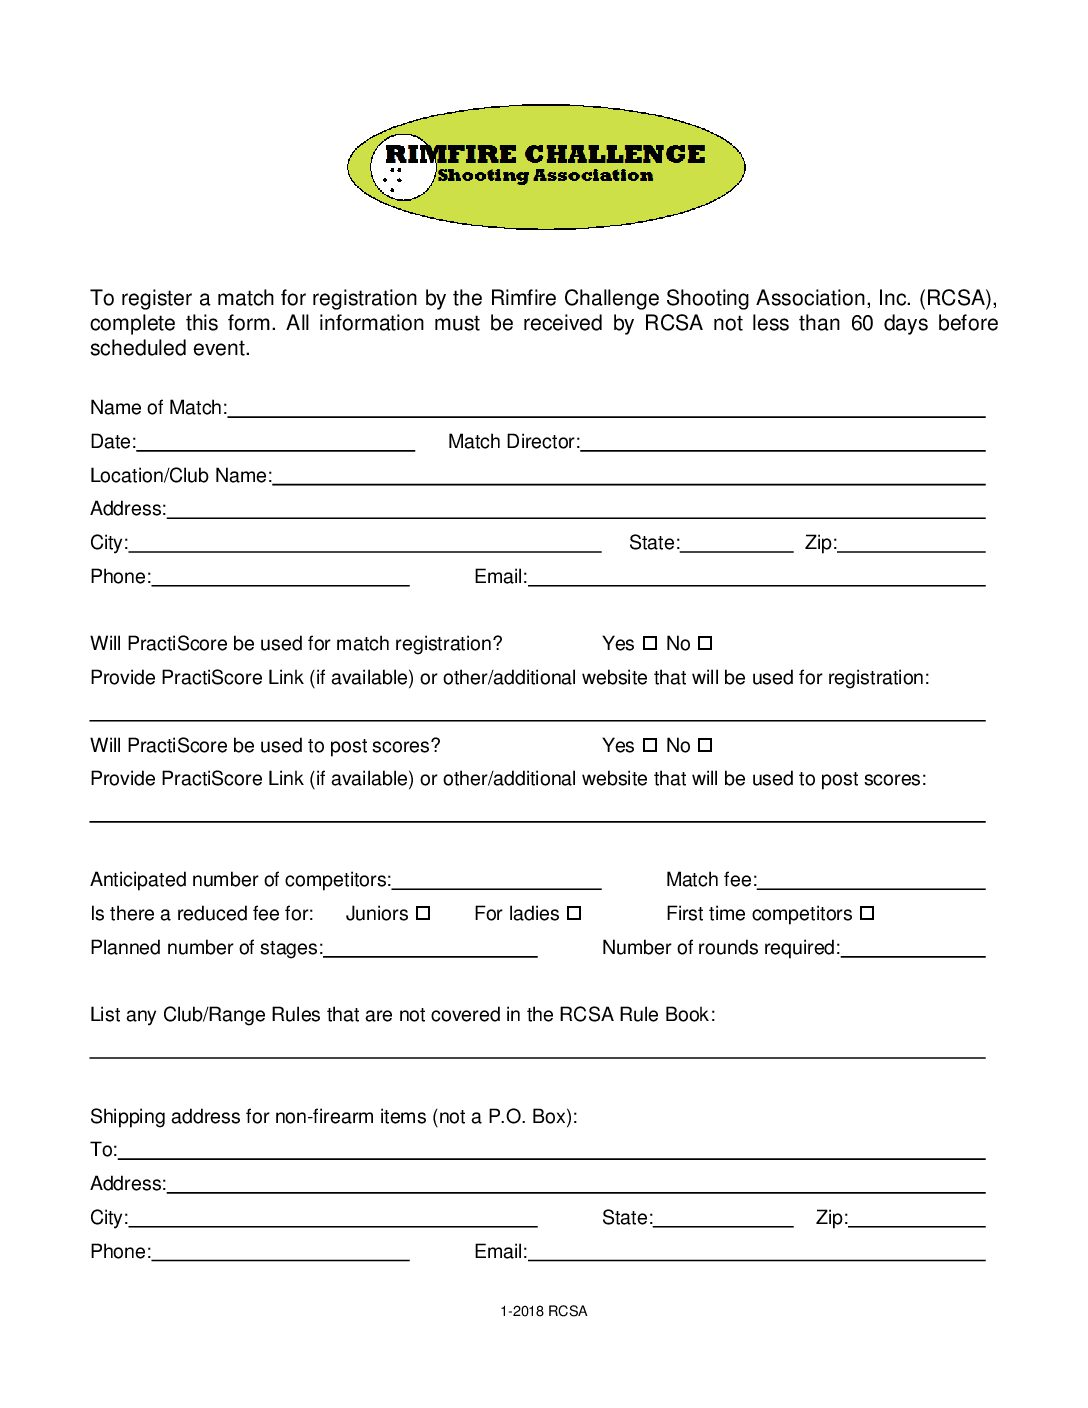 2018 match registration form_v010318